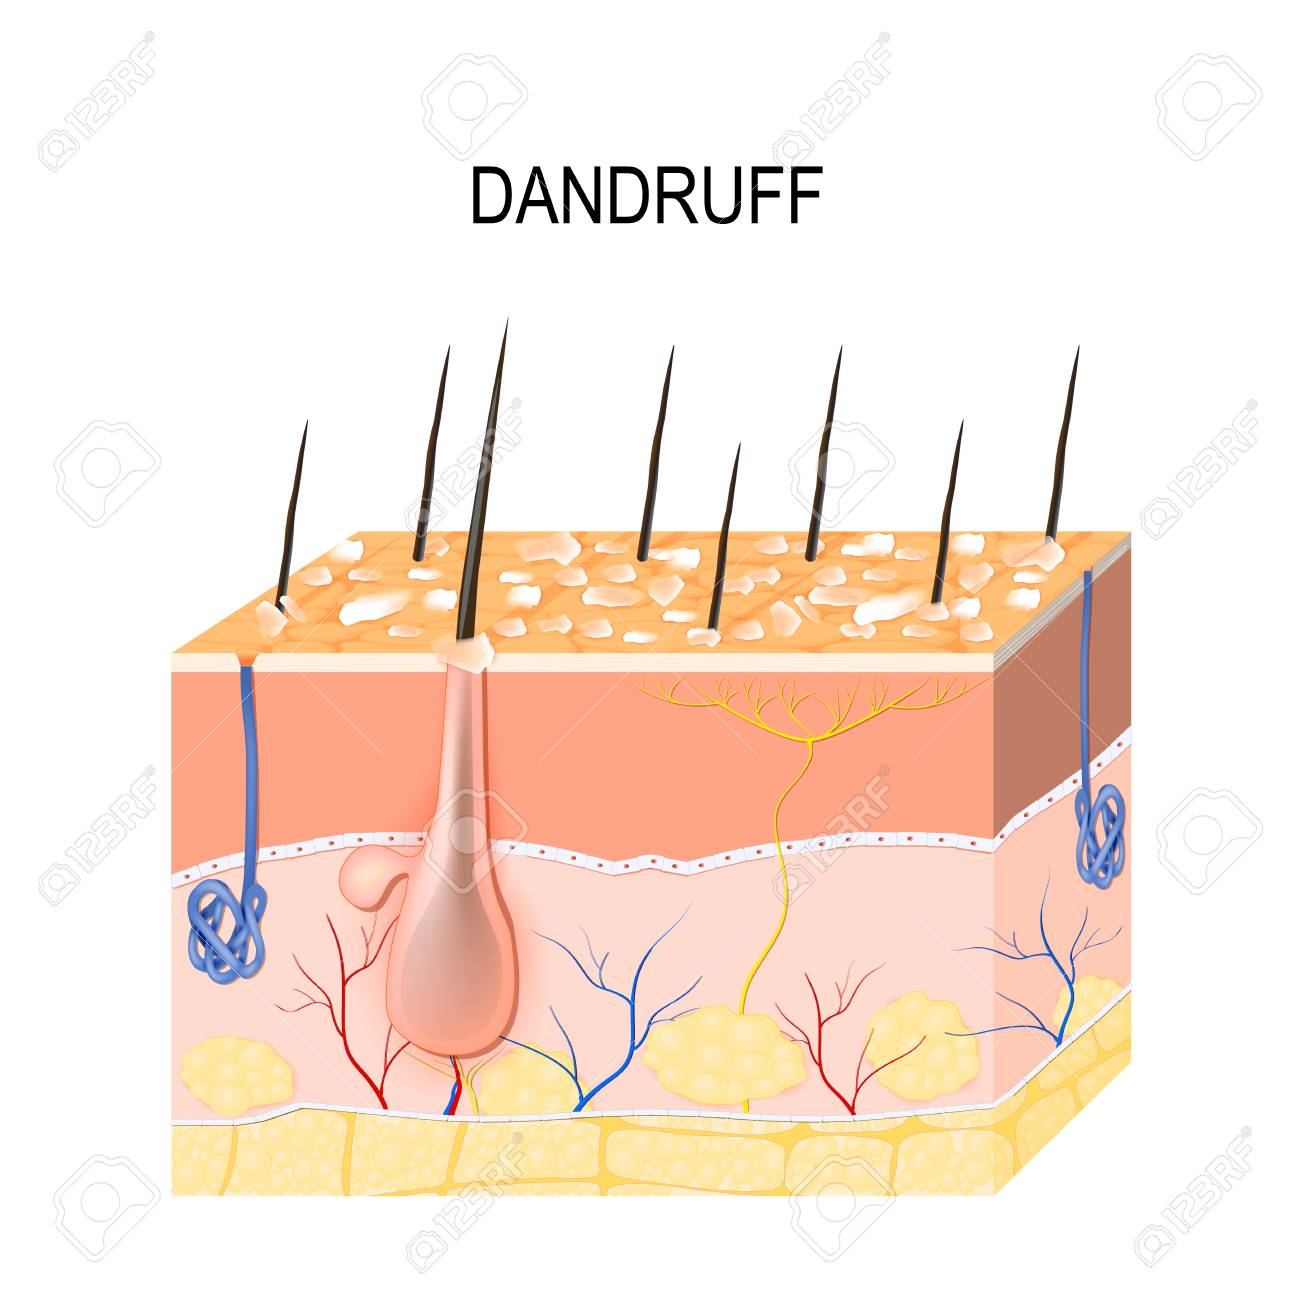 dandruff  seborrheic dermatitis can occur due to dry skin, bacteria and  fungus on the